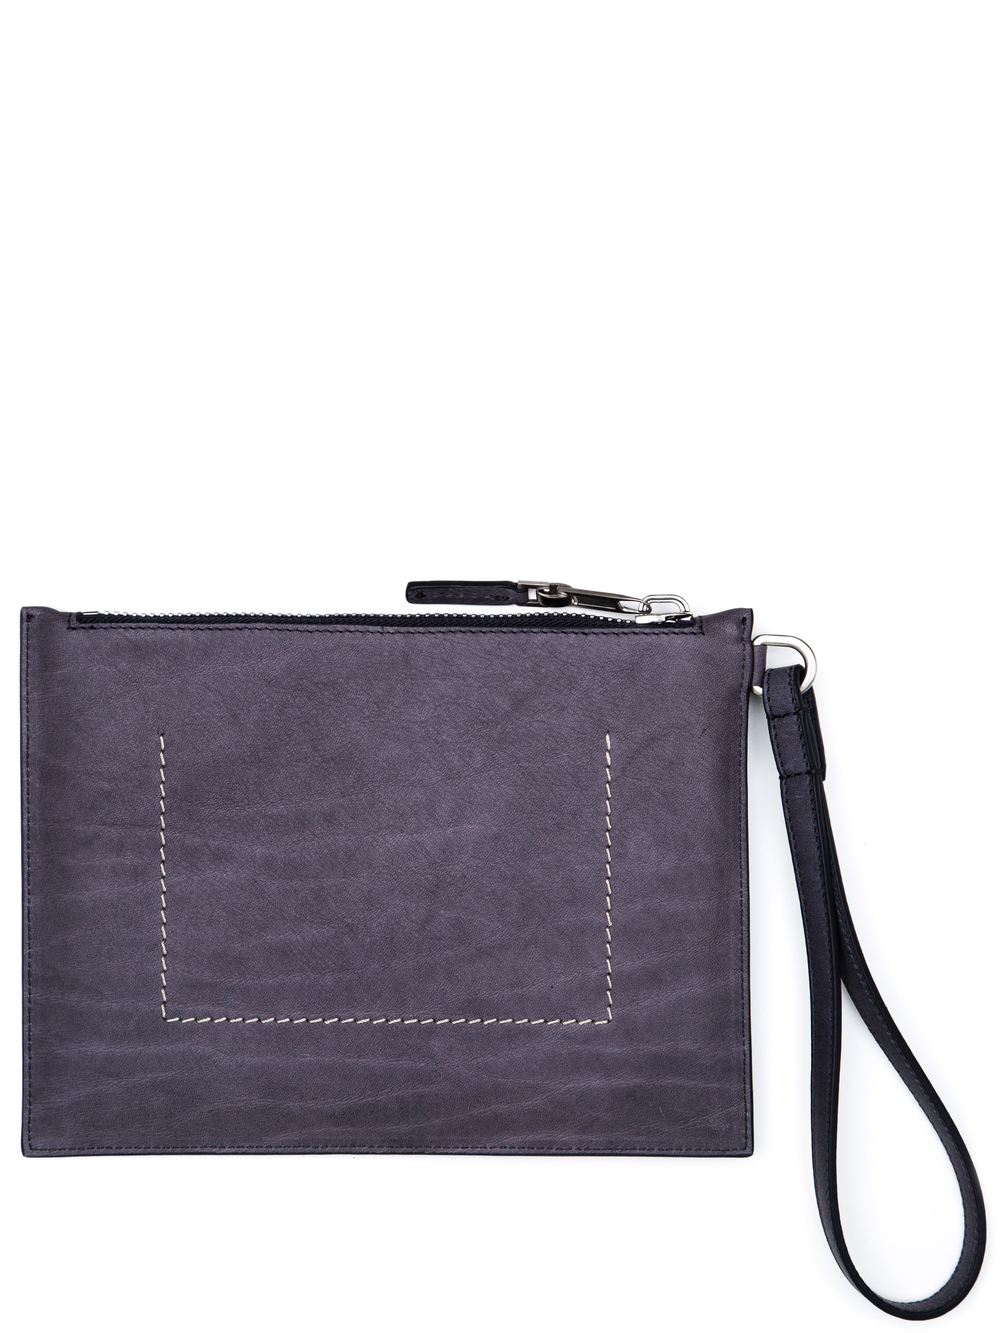 RICK OWENS WRIST POUCH IN PURPLE CALF LEATHER